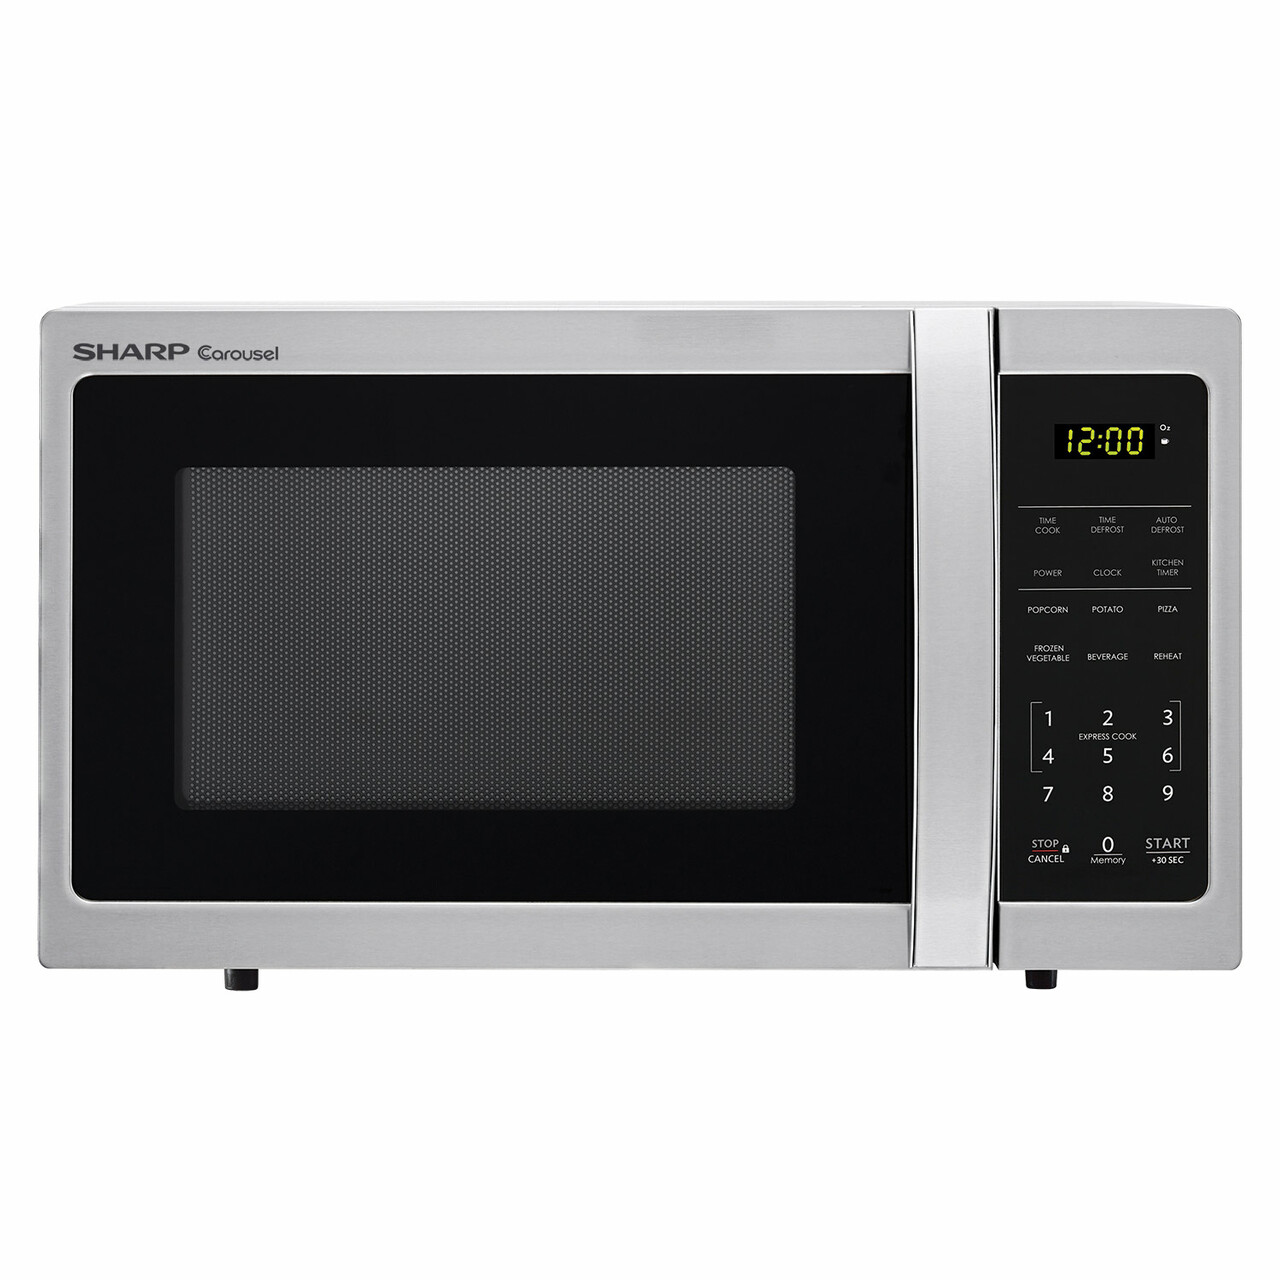 0.7 cu. ft. Sharp Stainless Steel Countertop Microwave (SMC0711BS)